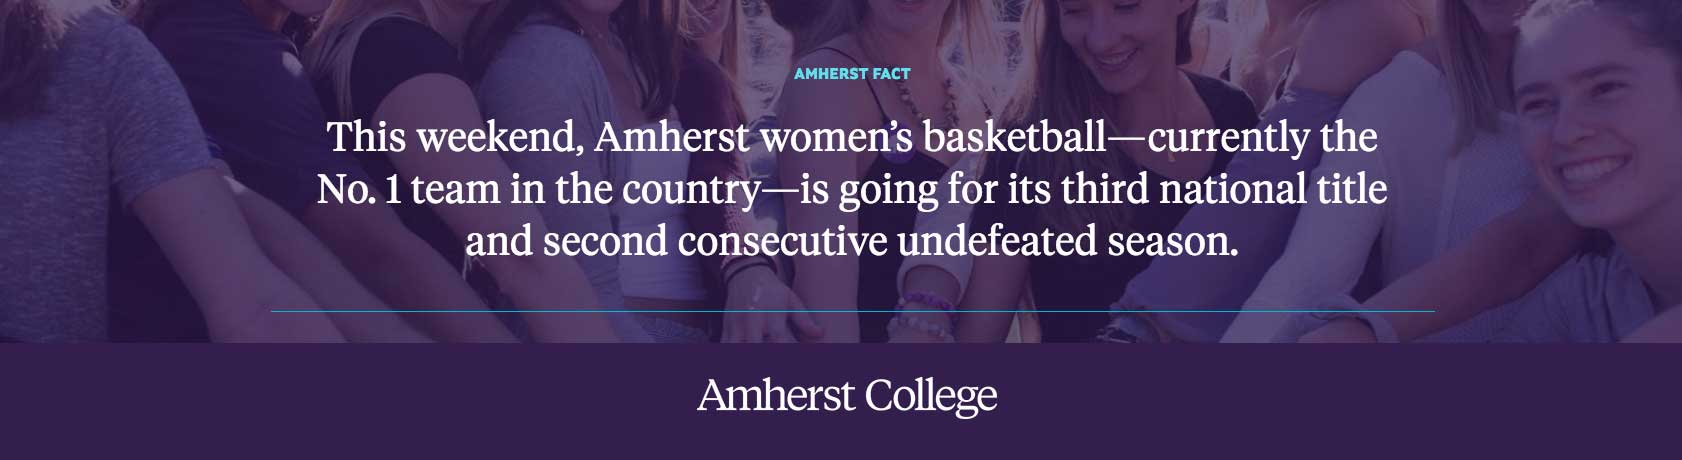 This weekend, Amherst women's basketball--currently the No. 1 team in the country--is going for its third nation